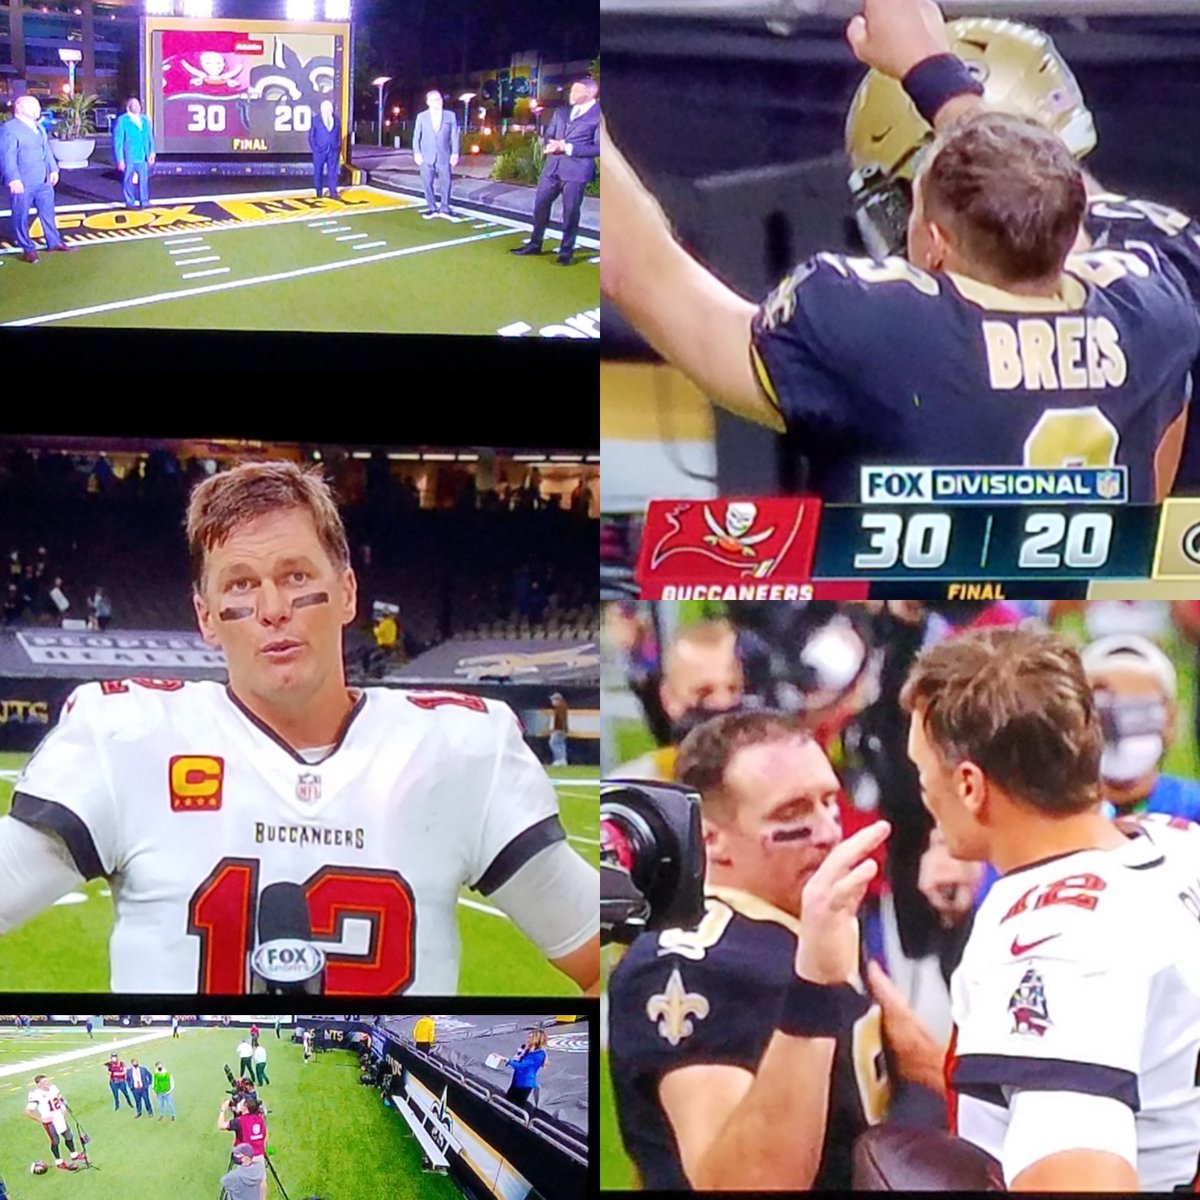 Good game. Amazing to see these two square off... 2 #HOF QBs 1 #GOAT #TBvsNO #Brady #Brees #NFCDivisional #NFLPlayoffs